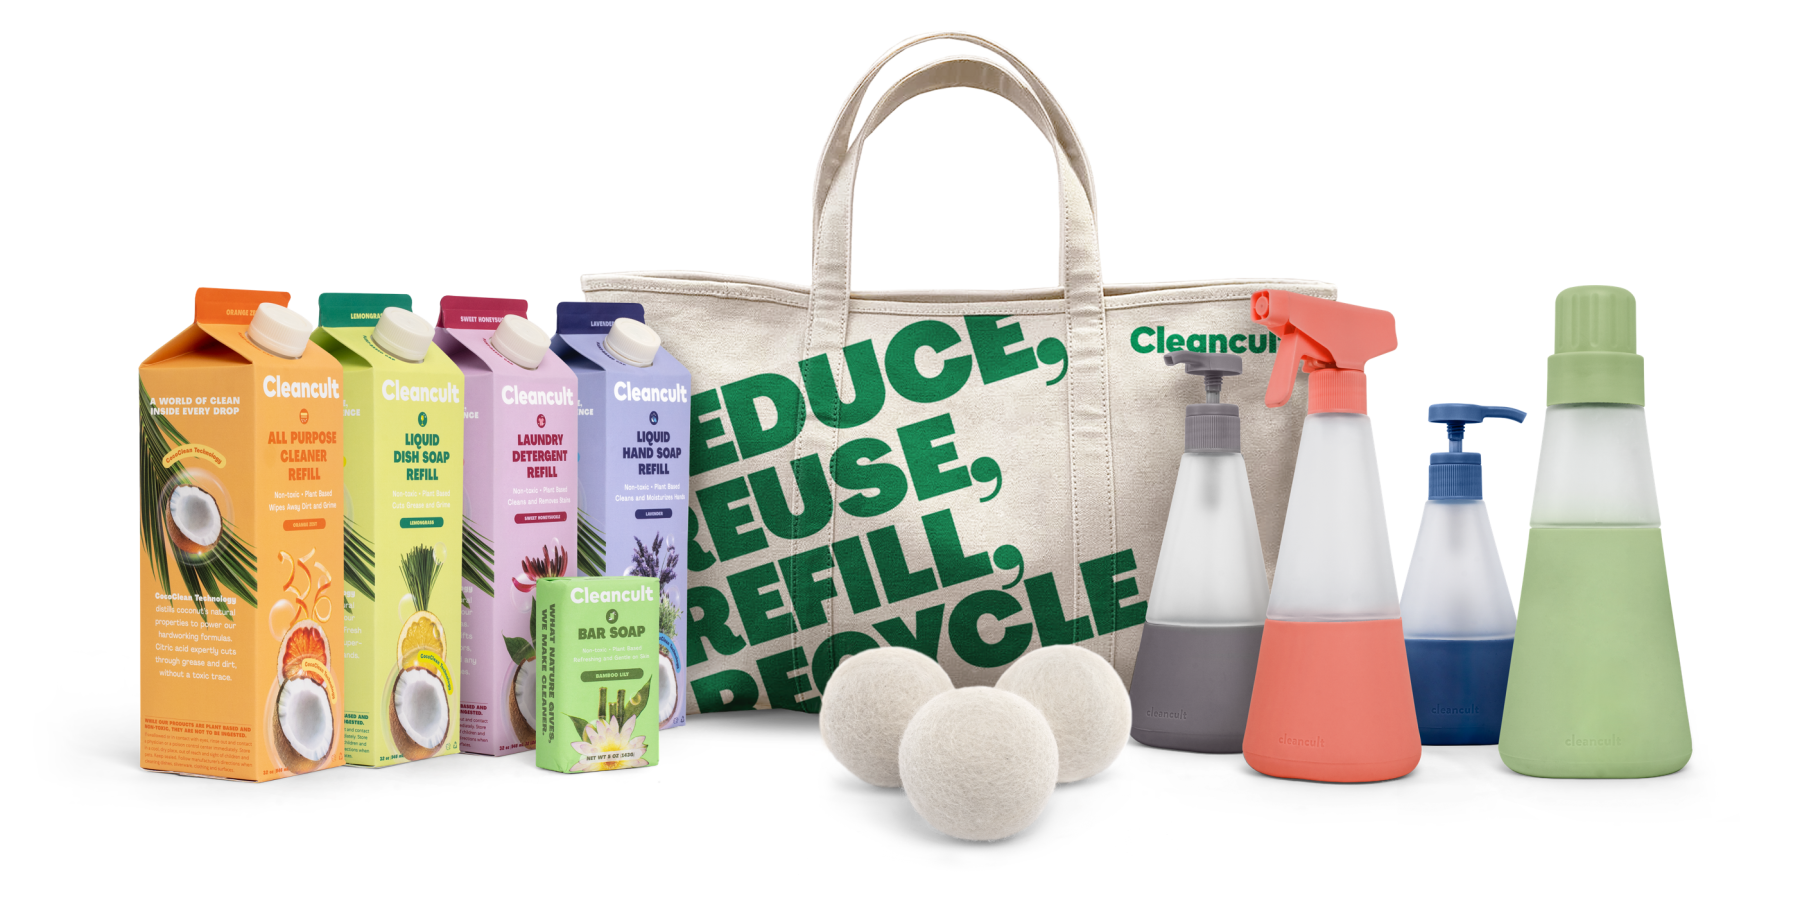 the cleaning bundle with bottles and refills